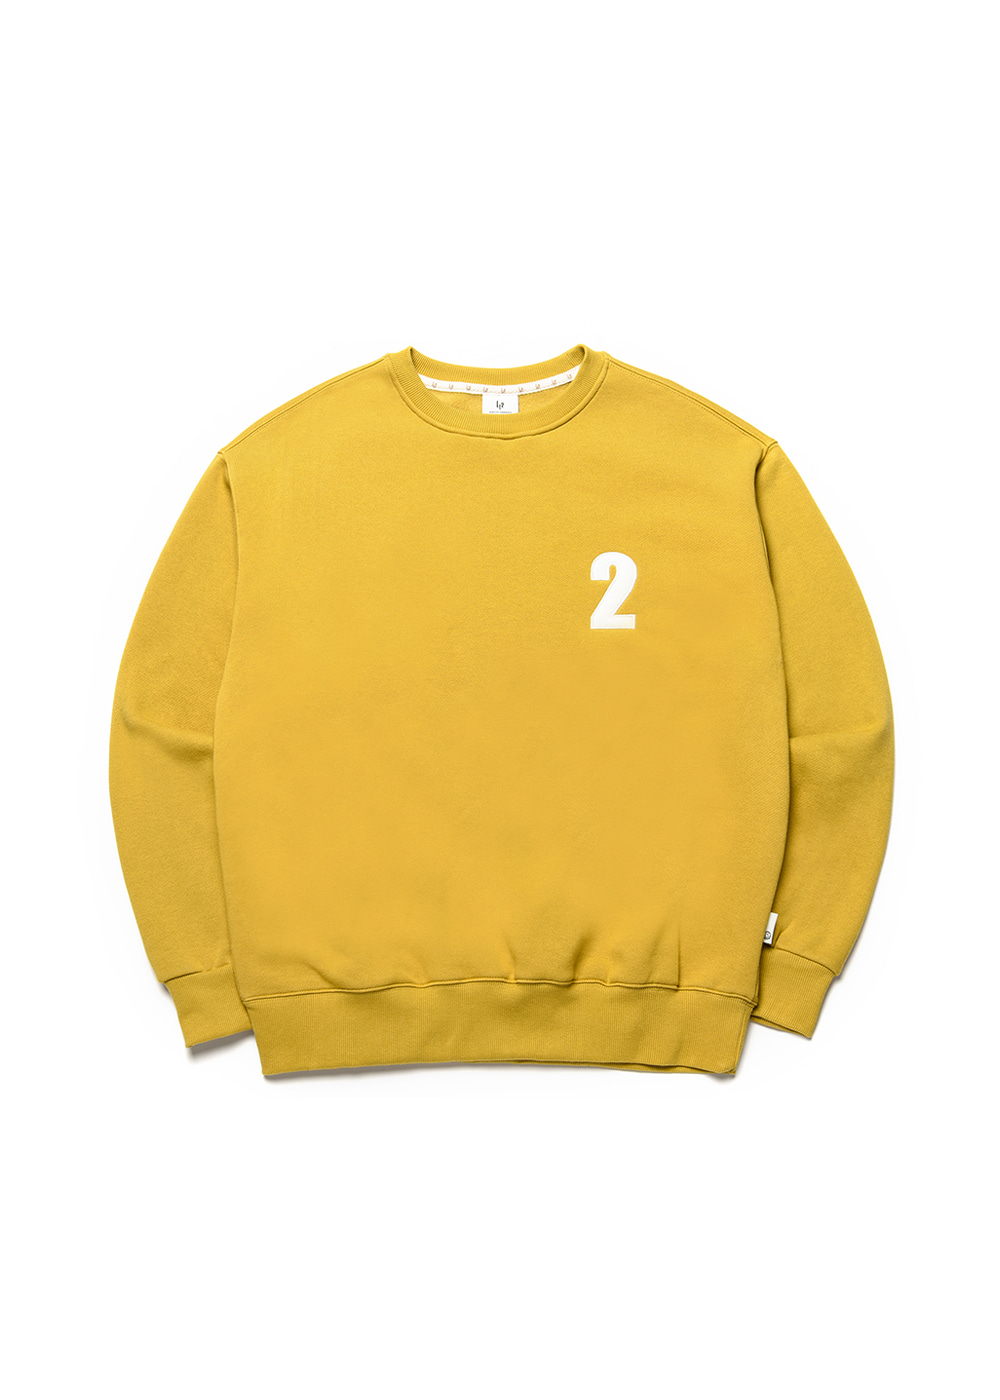 2 Logo sweat shirt [mustard green]